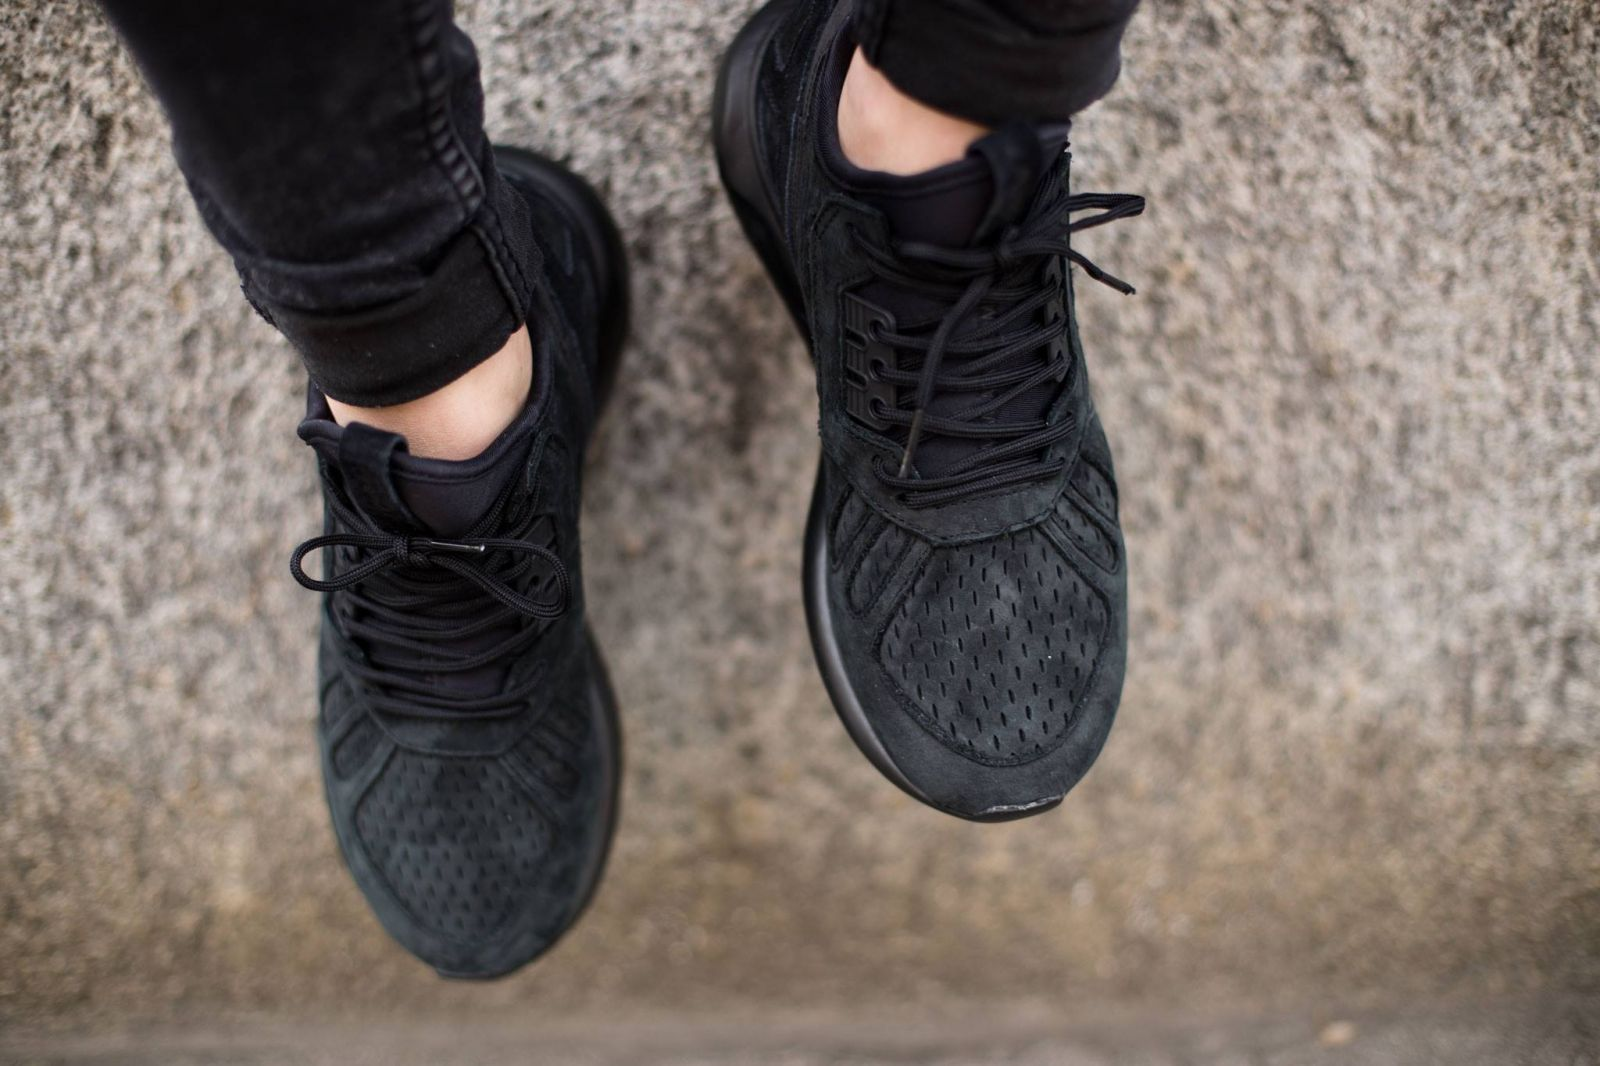 adidas Tubular Runner Black Running Inspired SHOEBACCA